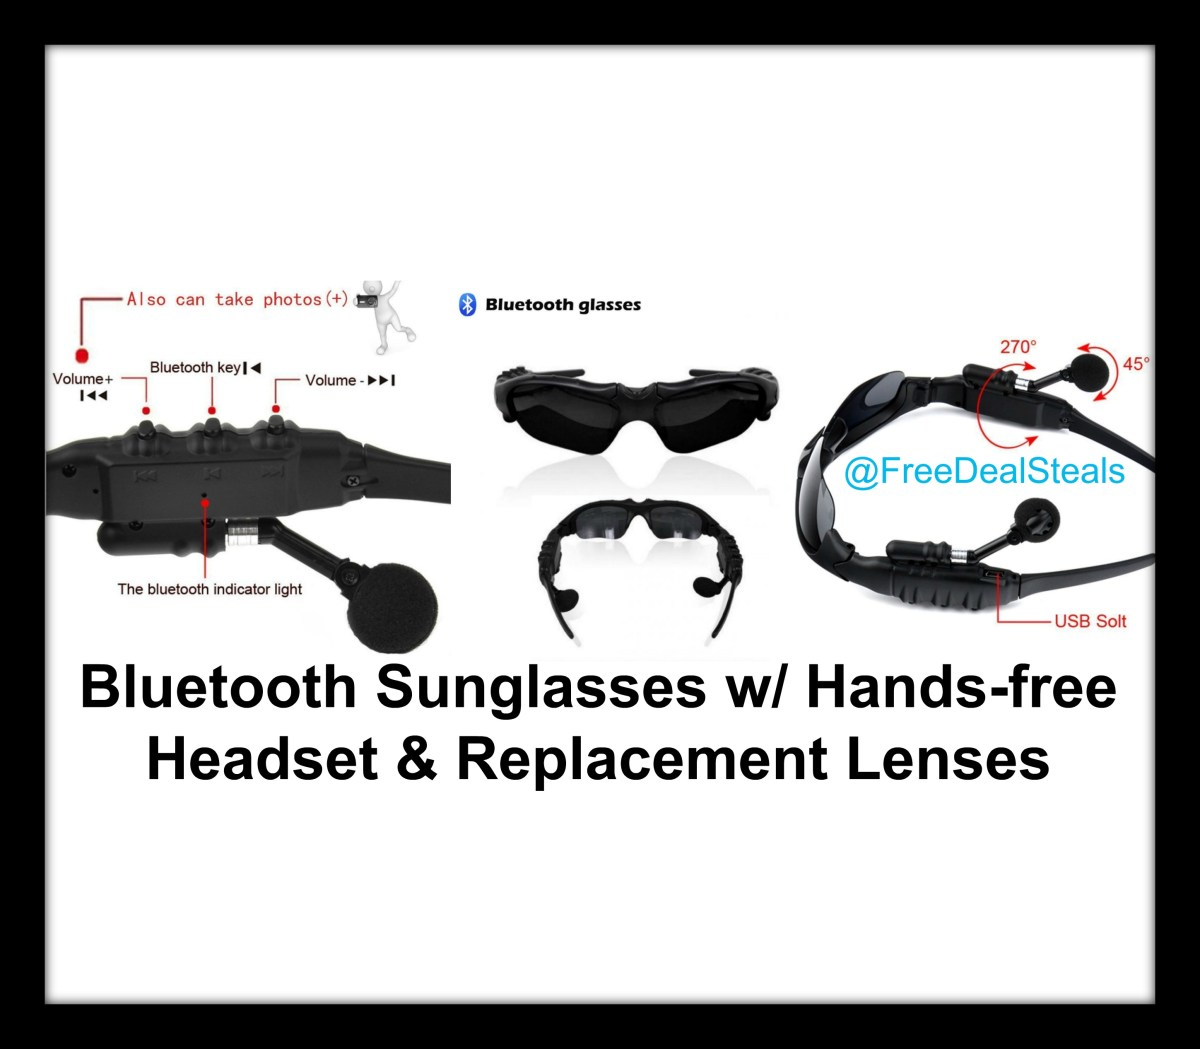 Bluetooth Sunglasses w/ Hands-free Headset & Replacement Lenses!